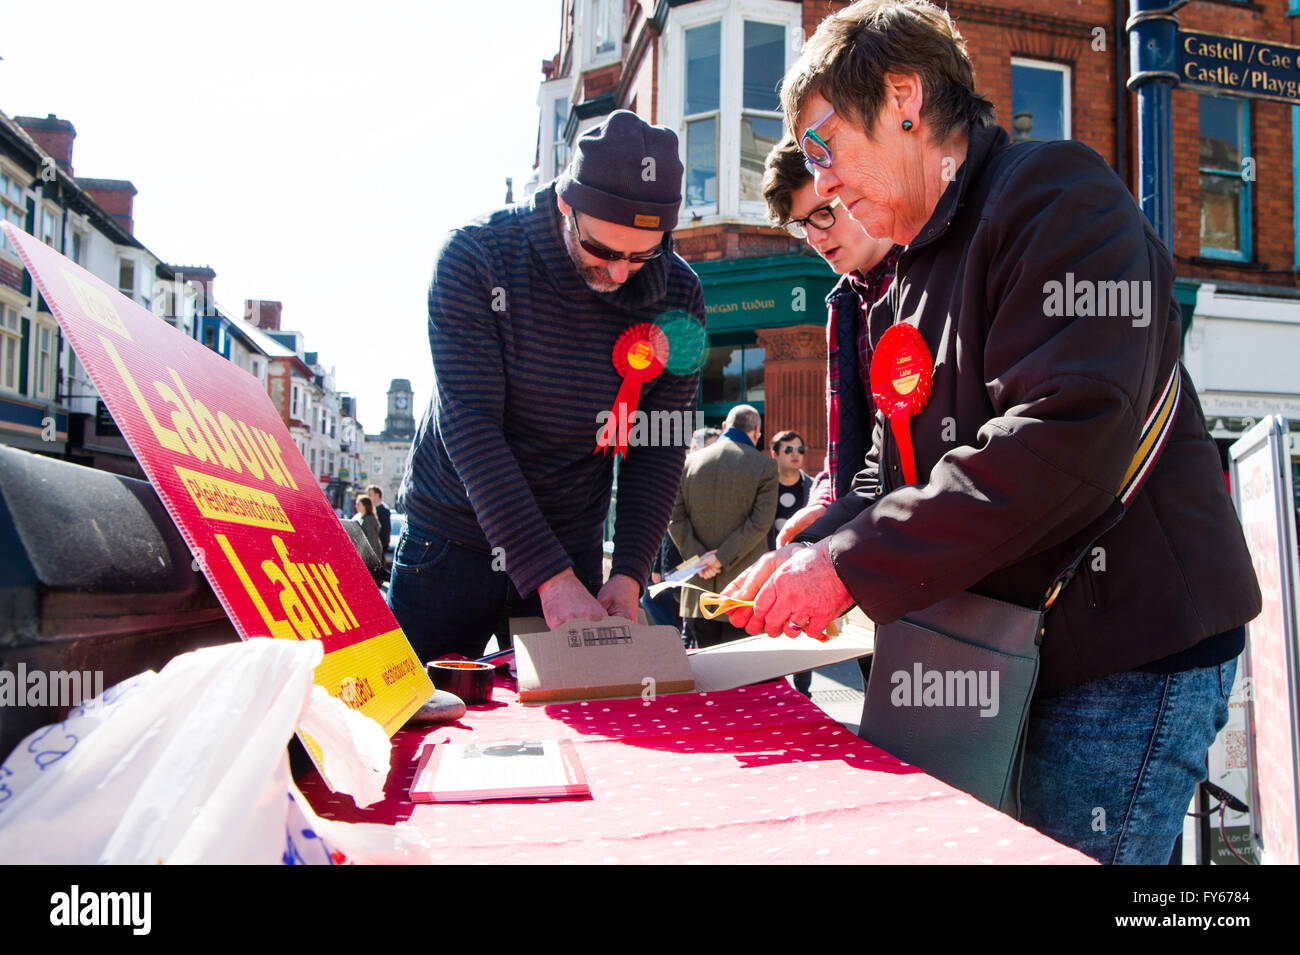 Aberystwyth Wales UK, Saturday 23 April 2016  Labour Party supporters in the Wales Assembly elections campaigning - Stock Image